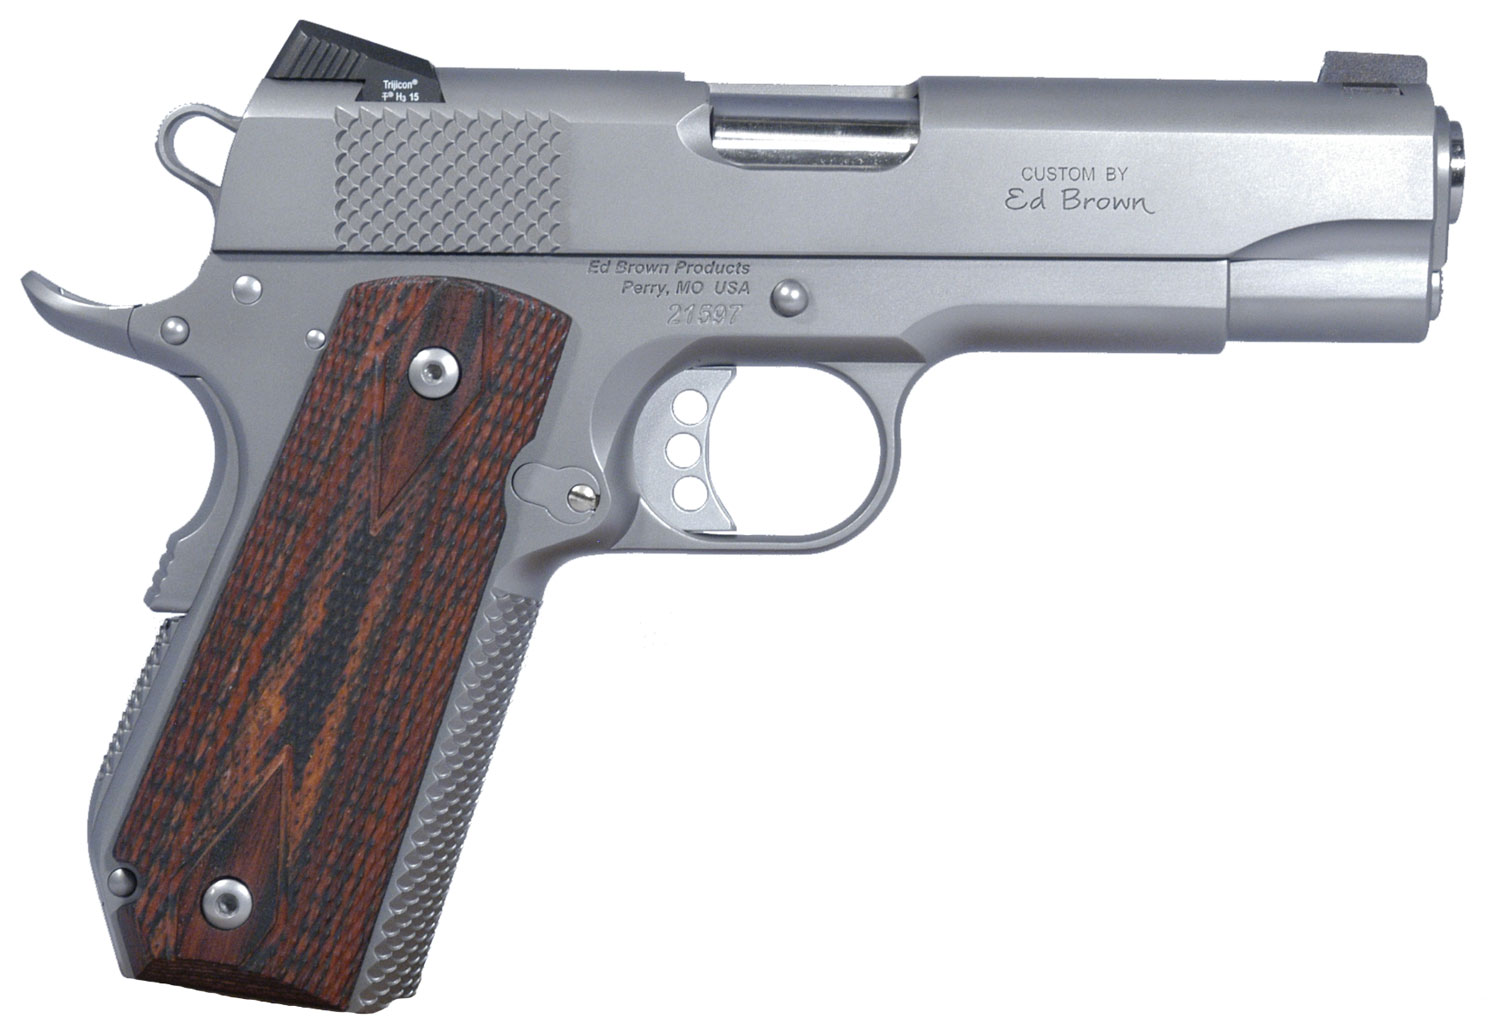 Ed Brown KCSS Kobra Carry Single 45 Automatic Colt Pistol (ACP) 4.25